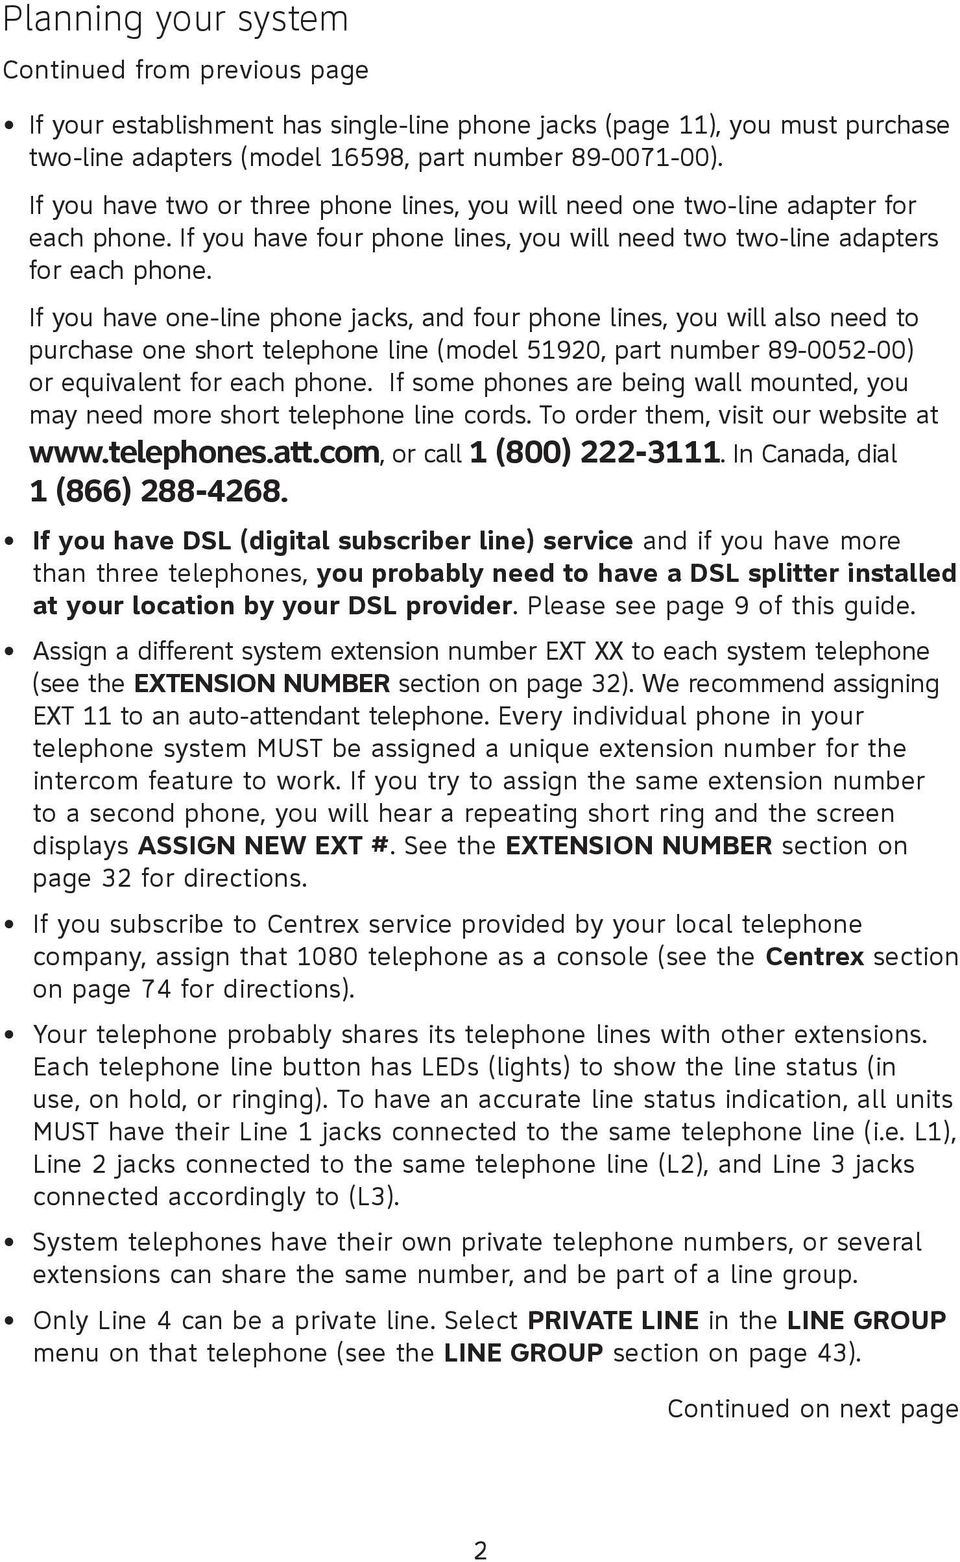 If you have one-line phone jacks, and four phone lines, you will also need to purchase one short telephone line (model 51920, part number 89-0052-00) or equivalent for each phone.